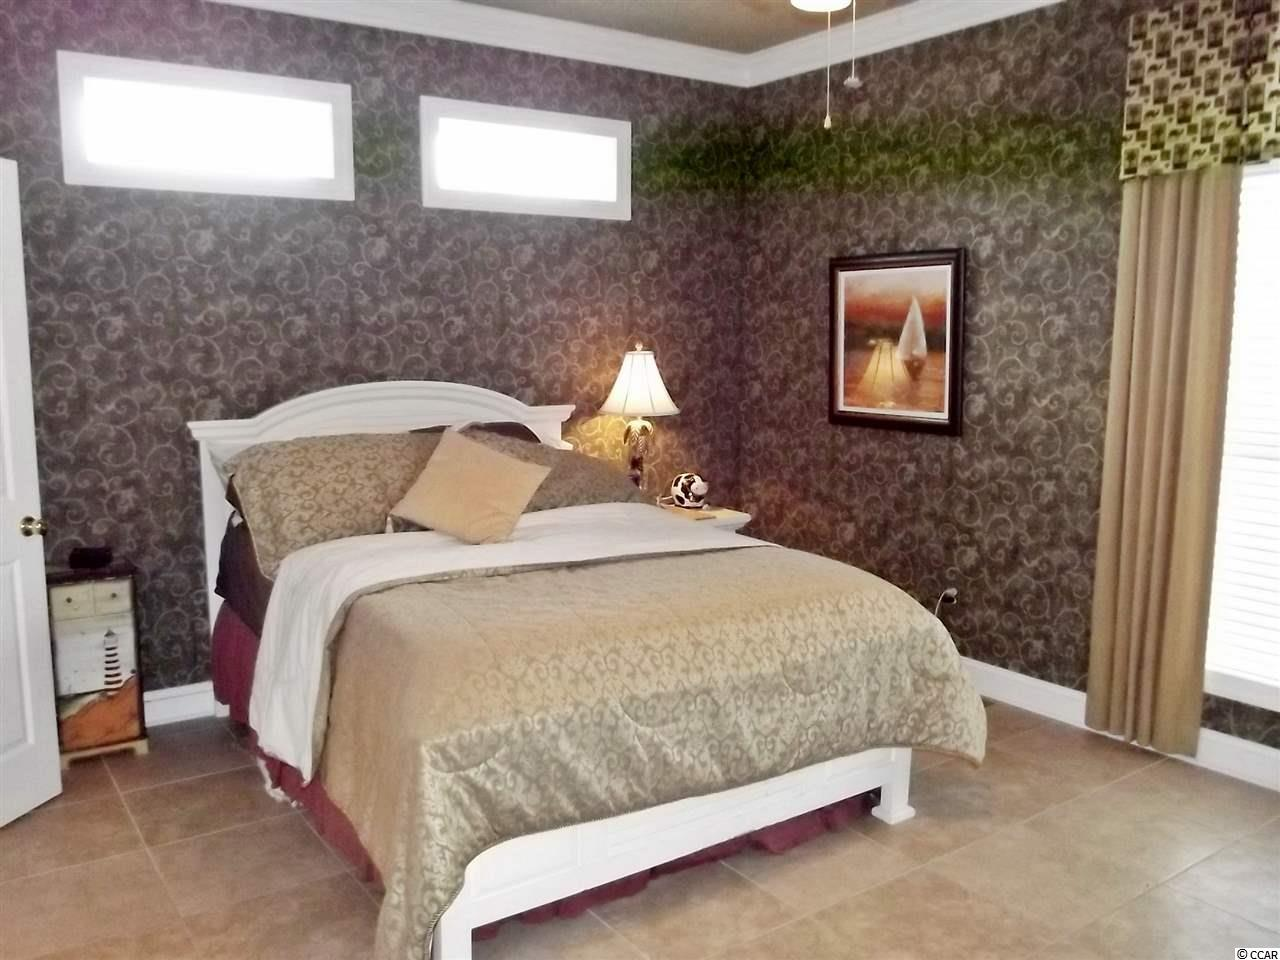 Additional photo for property listing at 96 Grackle Drive 96 Grackle Drive Pawleys Island, South Carolina 29585 United States